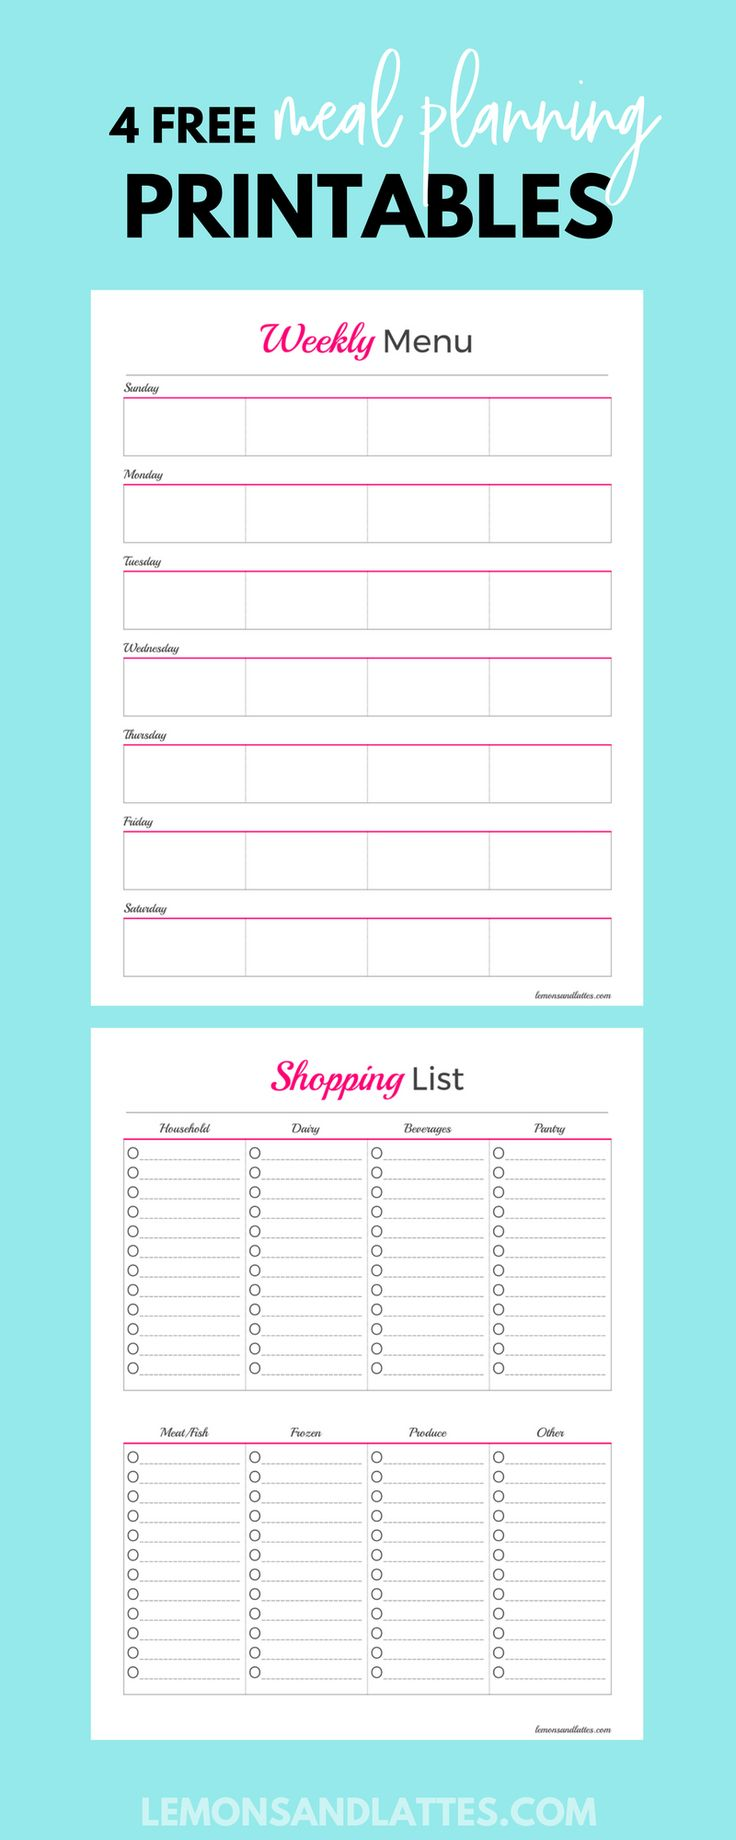 monthly meal planner template with grocery list - the 25 best grocery list templates ideas on pinterest